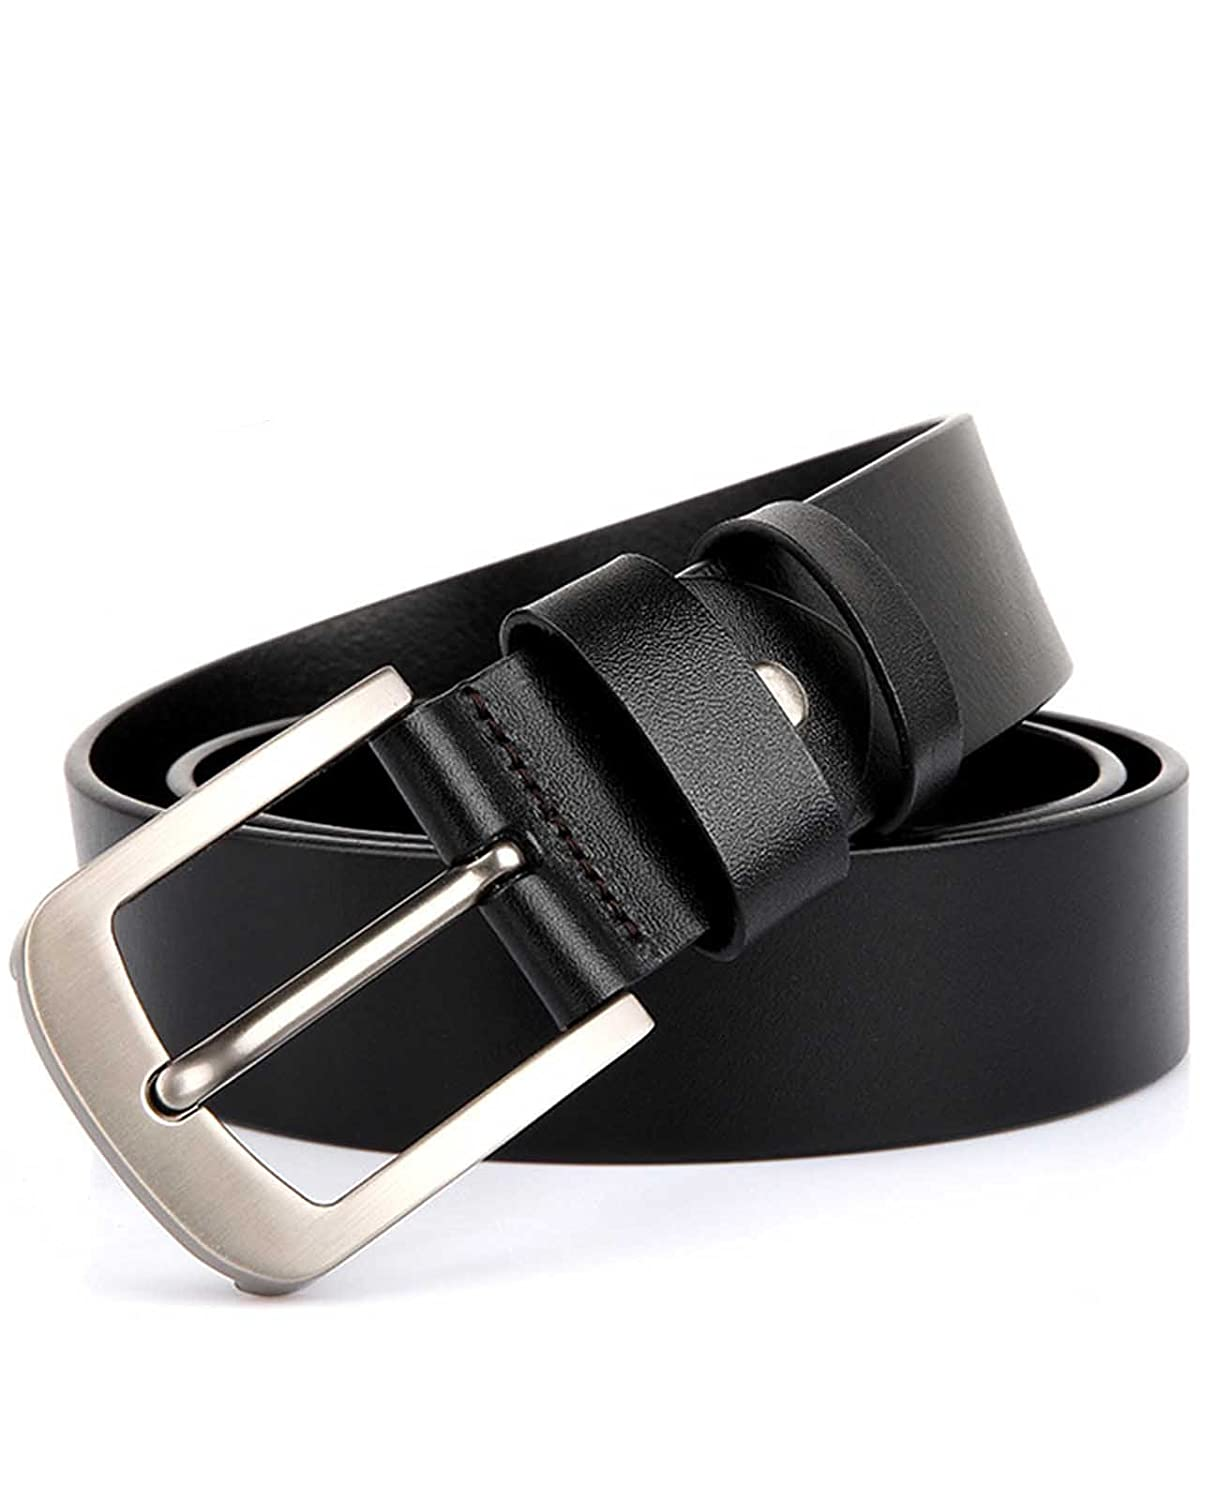 Nidicus Mens 38mm Wide Casual Leather Bridle Genuine Leather Dress Belt